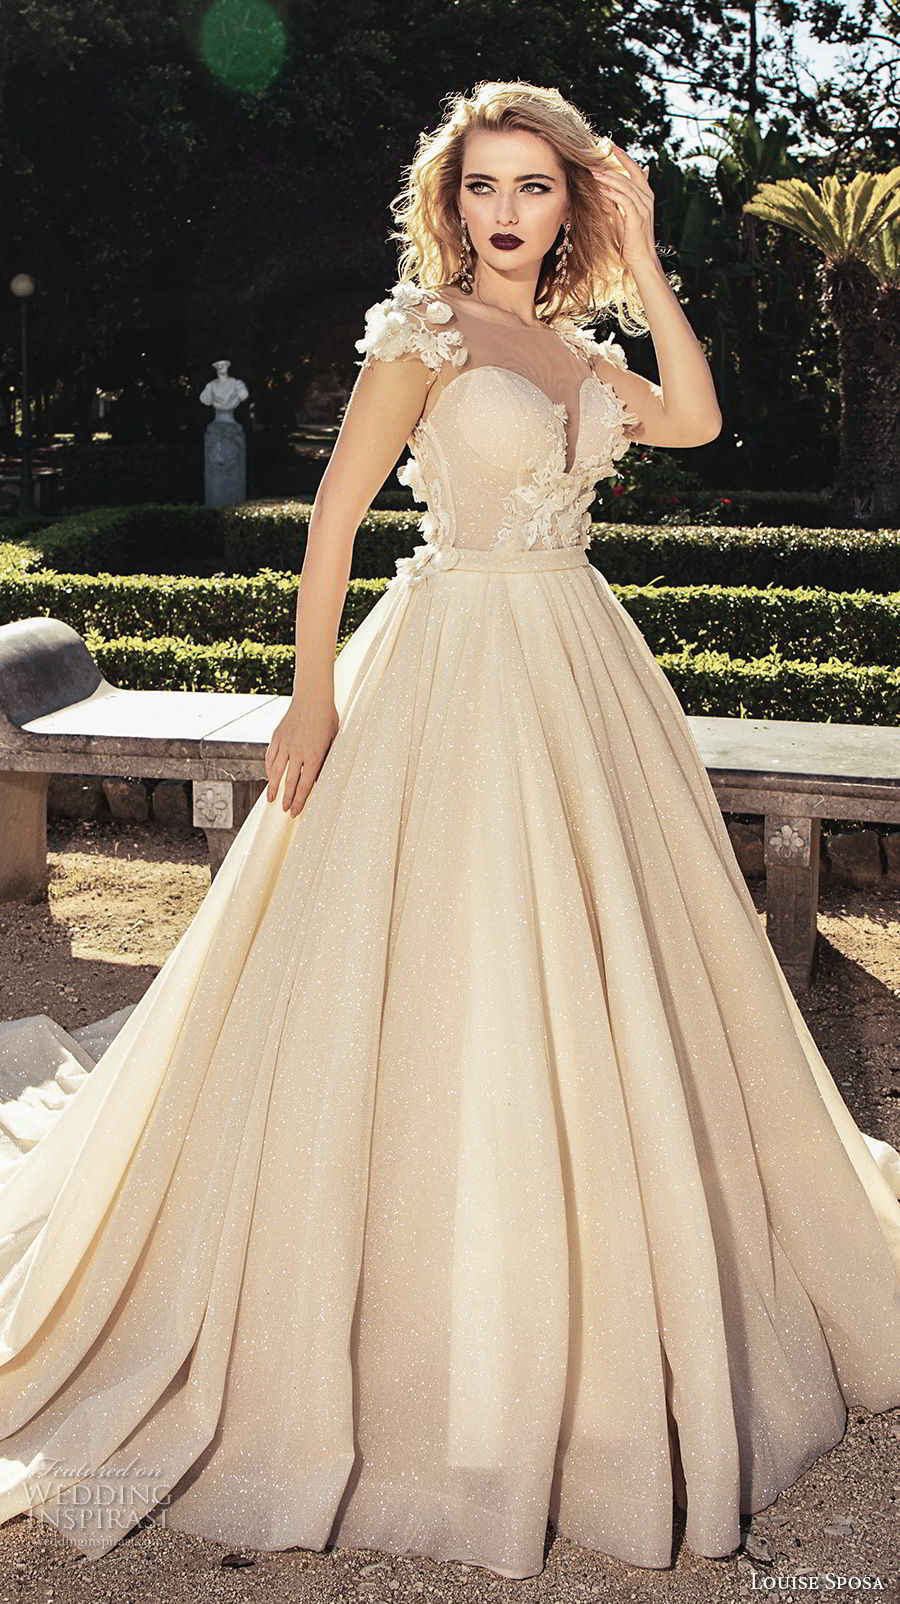 Colorful Amy Louise Bridal Gowns Gift - Wedding and flowers ...